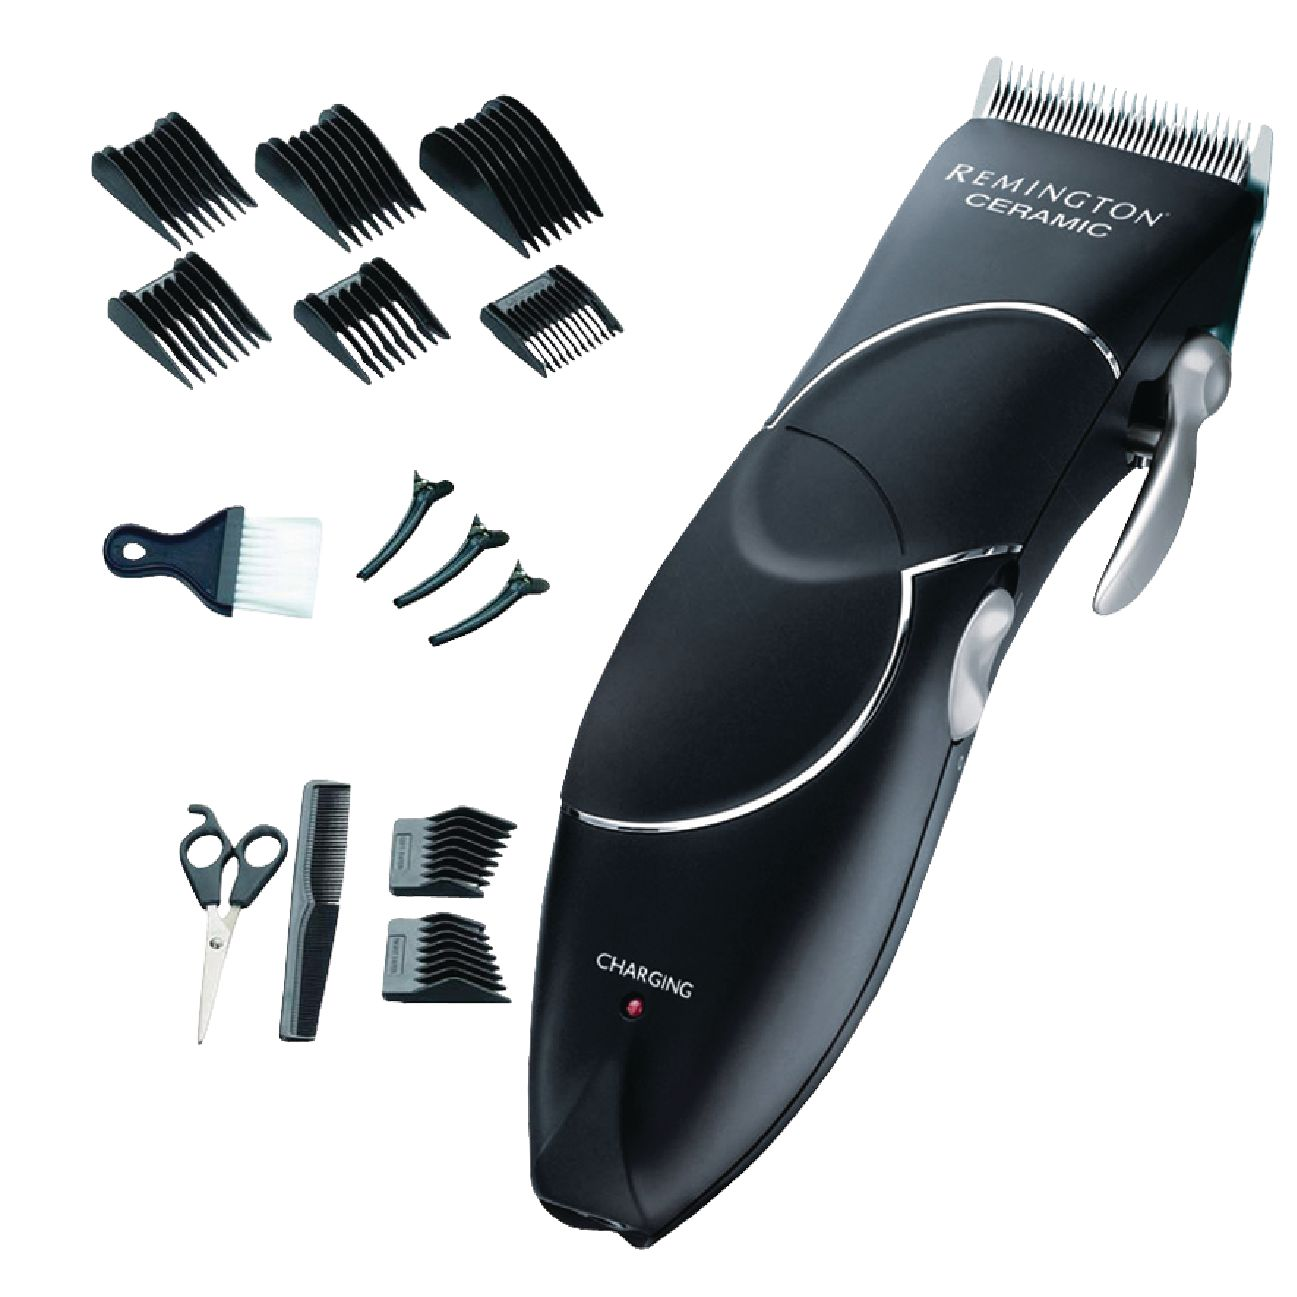 REM-HC363C : Remington - Hairclipper ceramic blades